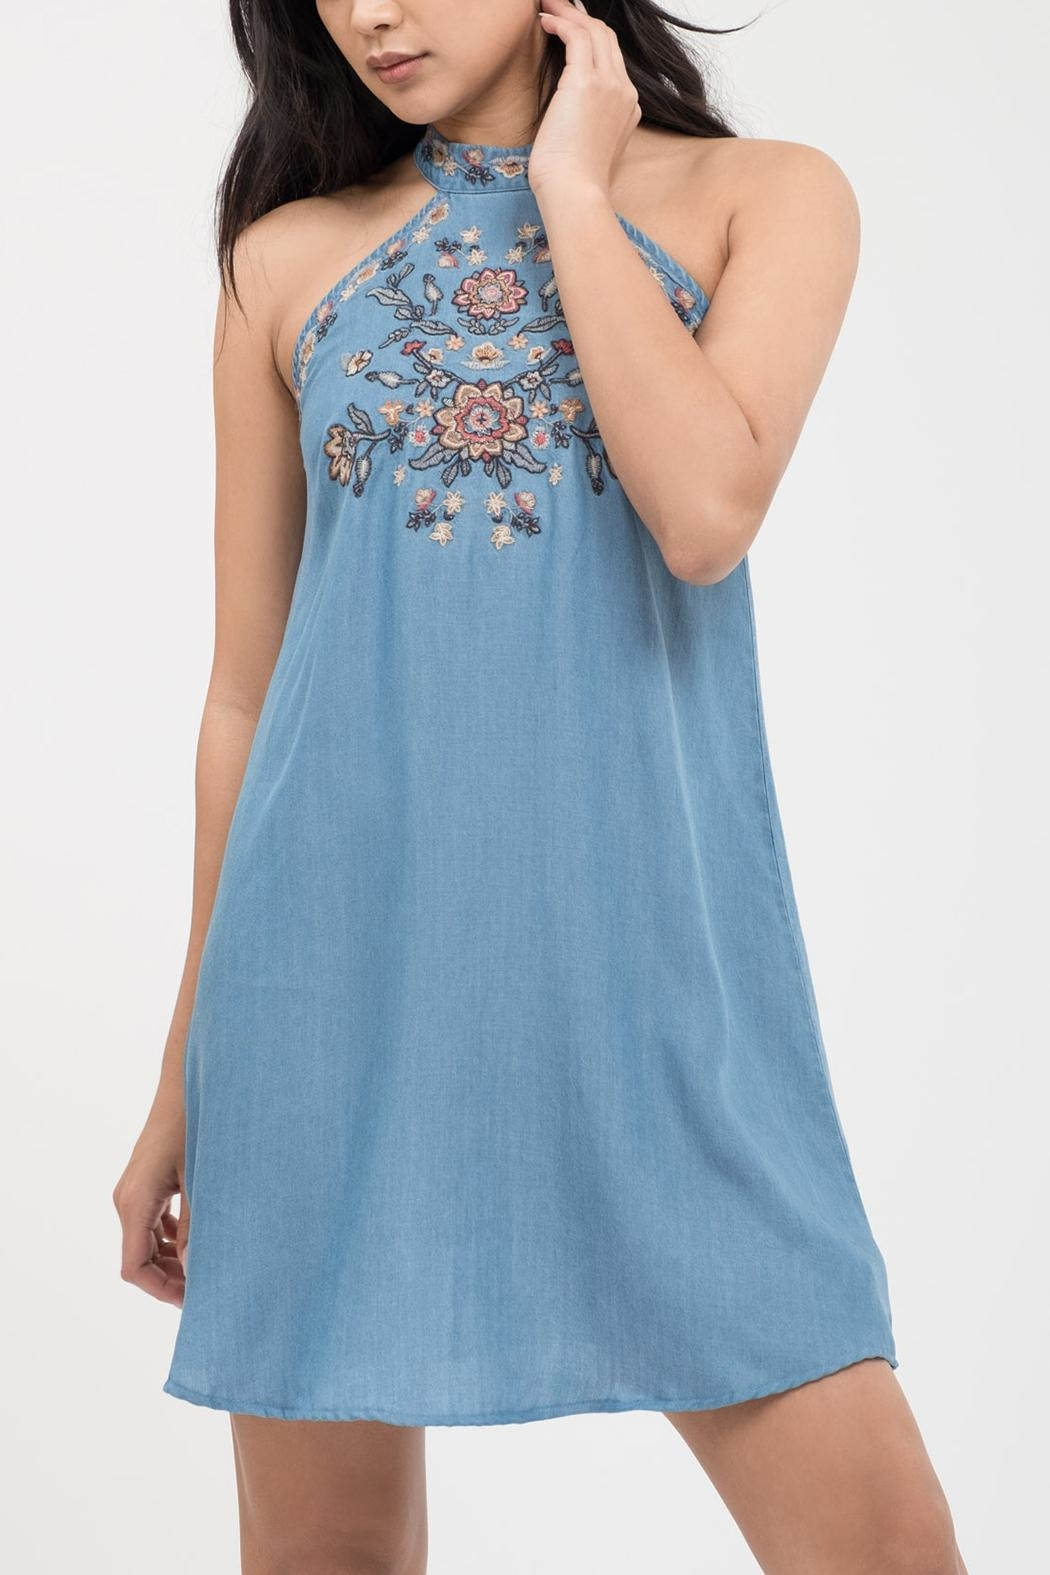 Blu Pepper Floral Embroidery Dress - Main Image